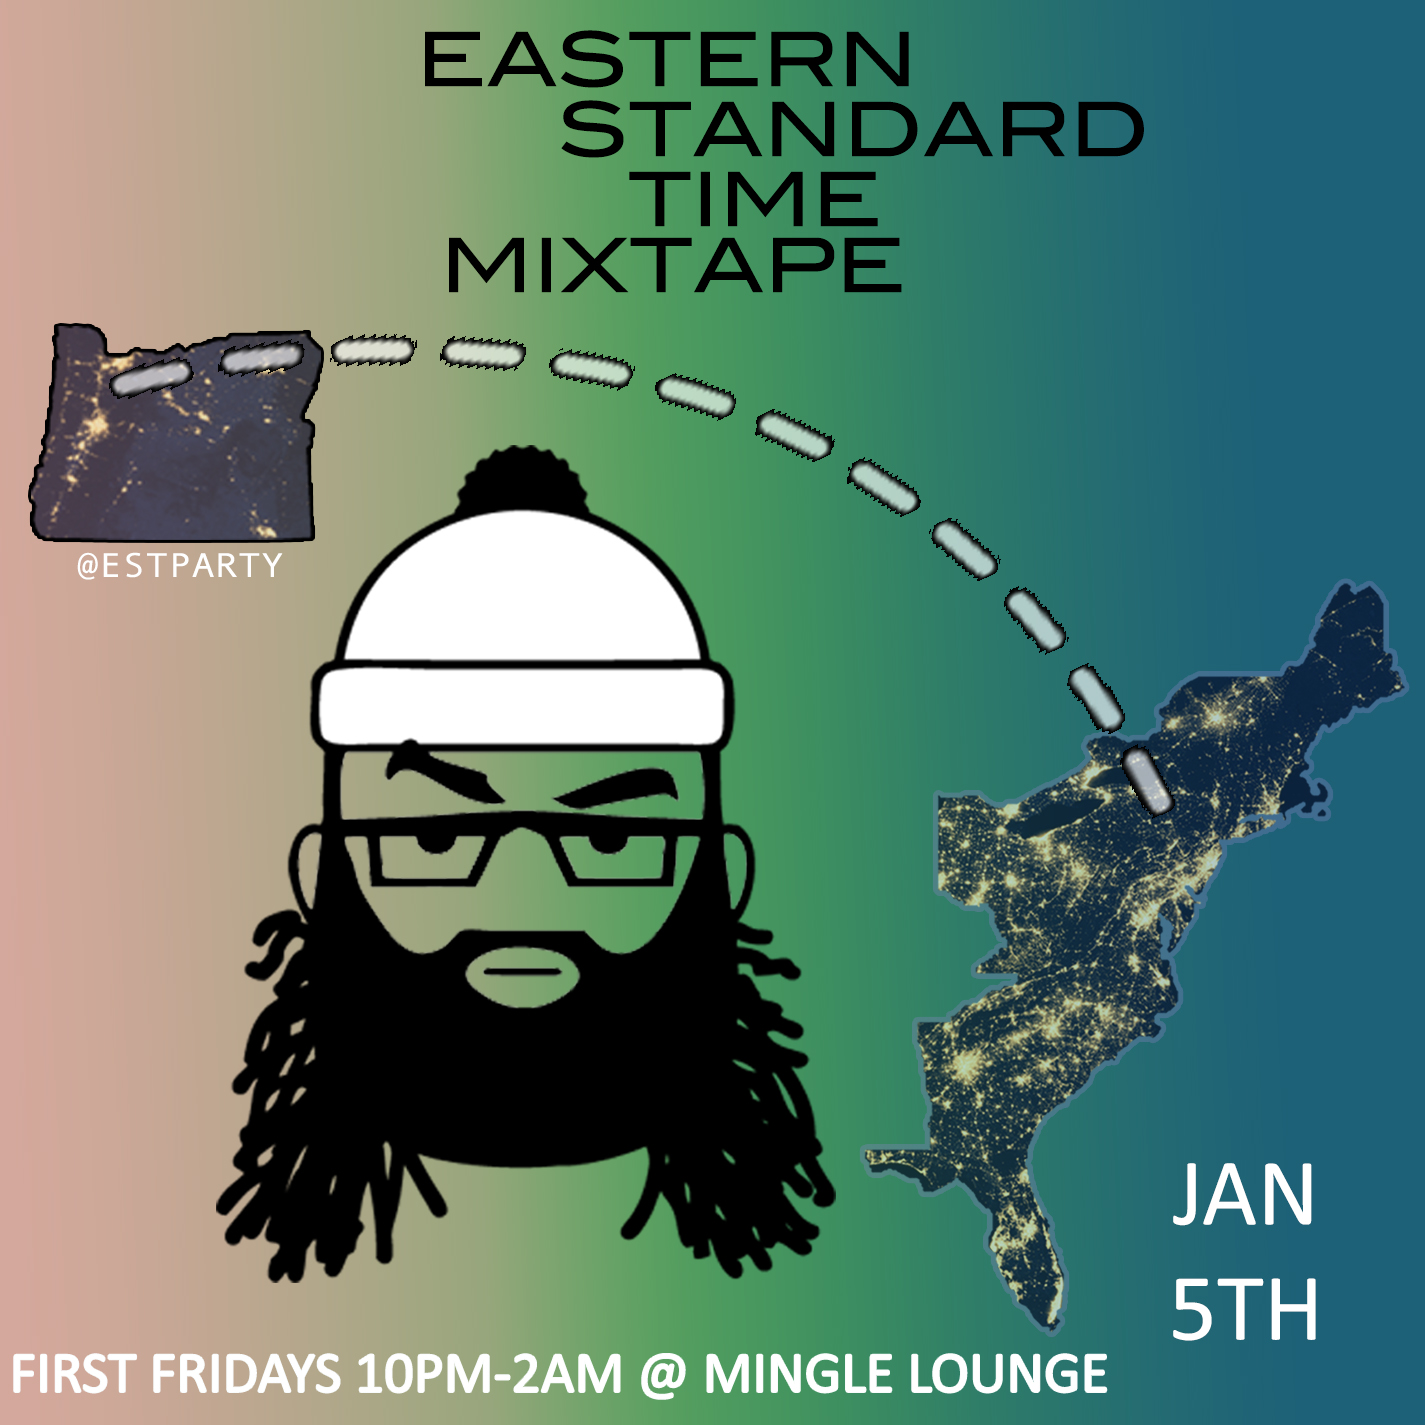 EASTERN STANDARD TIME MIX